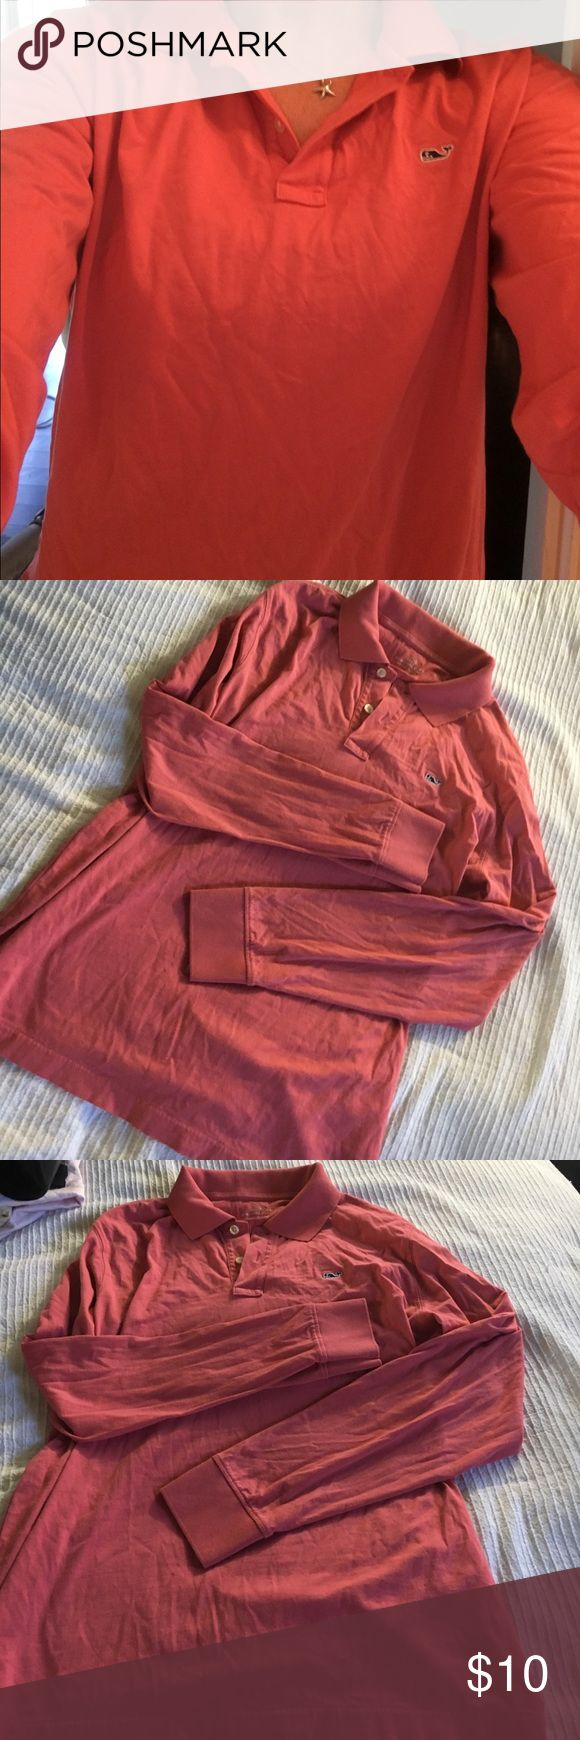 VINEYARD VINES CORAL LONG SLEEVE RUGBY SHIRT SZ L Pre owned. Women's large. Size Large. No stains or odors. Smoke free home. Small tag hole (pictured) at bottom of back collar. Not visible. Vineyard Vines Tops Tees - Long Sleeve